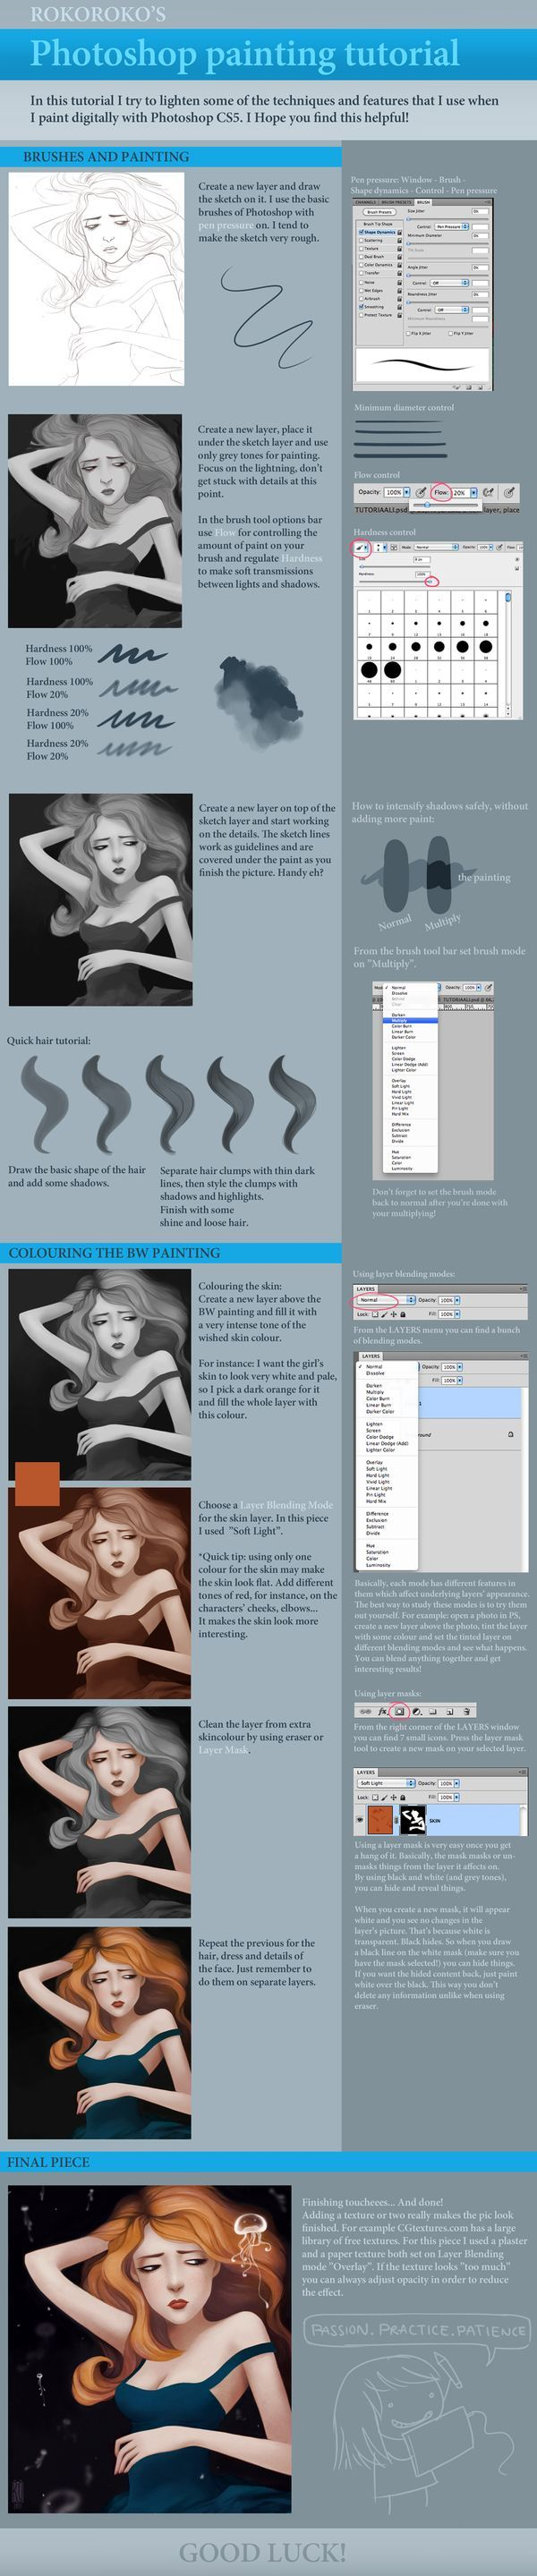 Photoshop Painting Tutorial by ~rroko on deviantART -- look actual painting techniques in a nice straightforward illustration